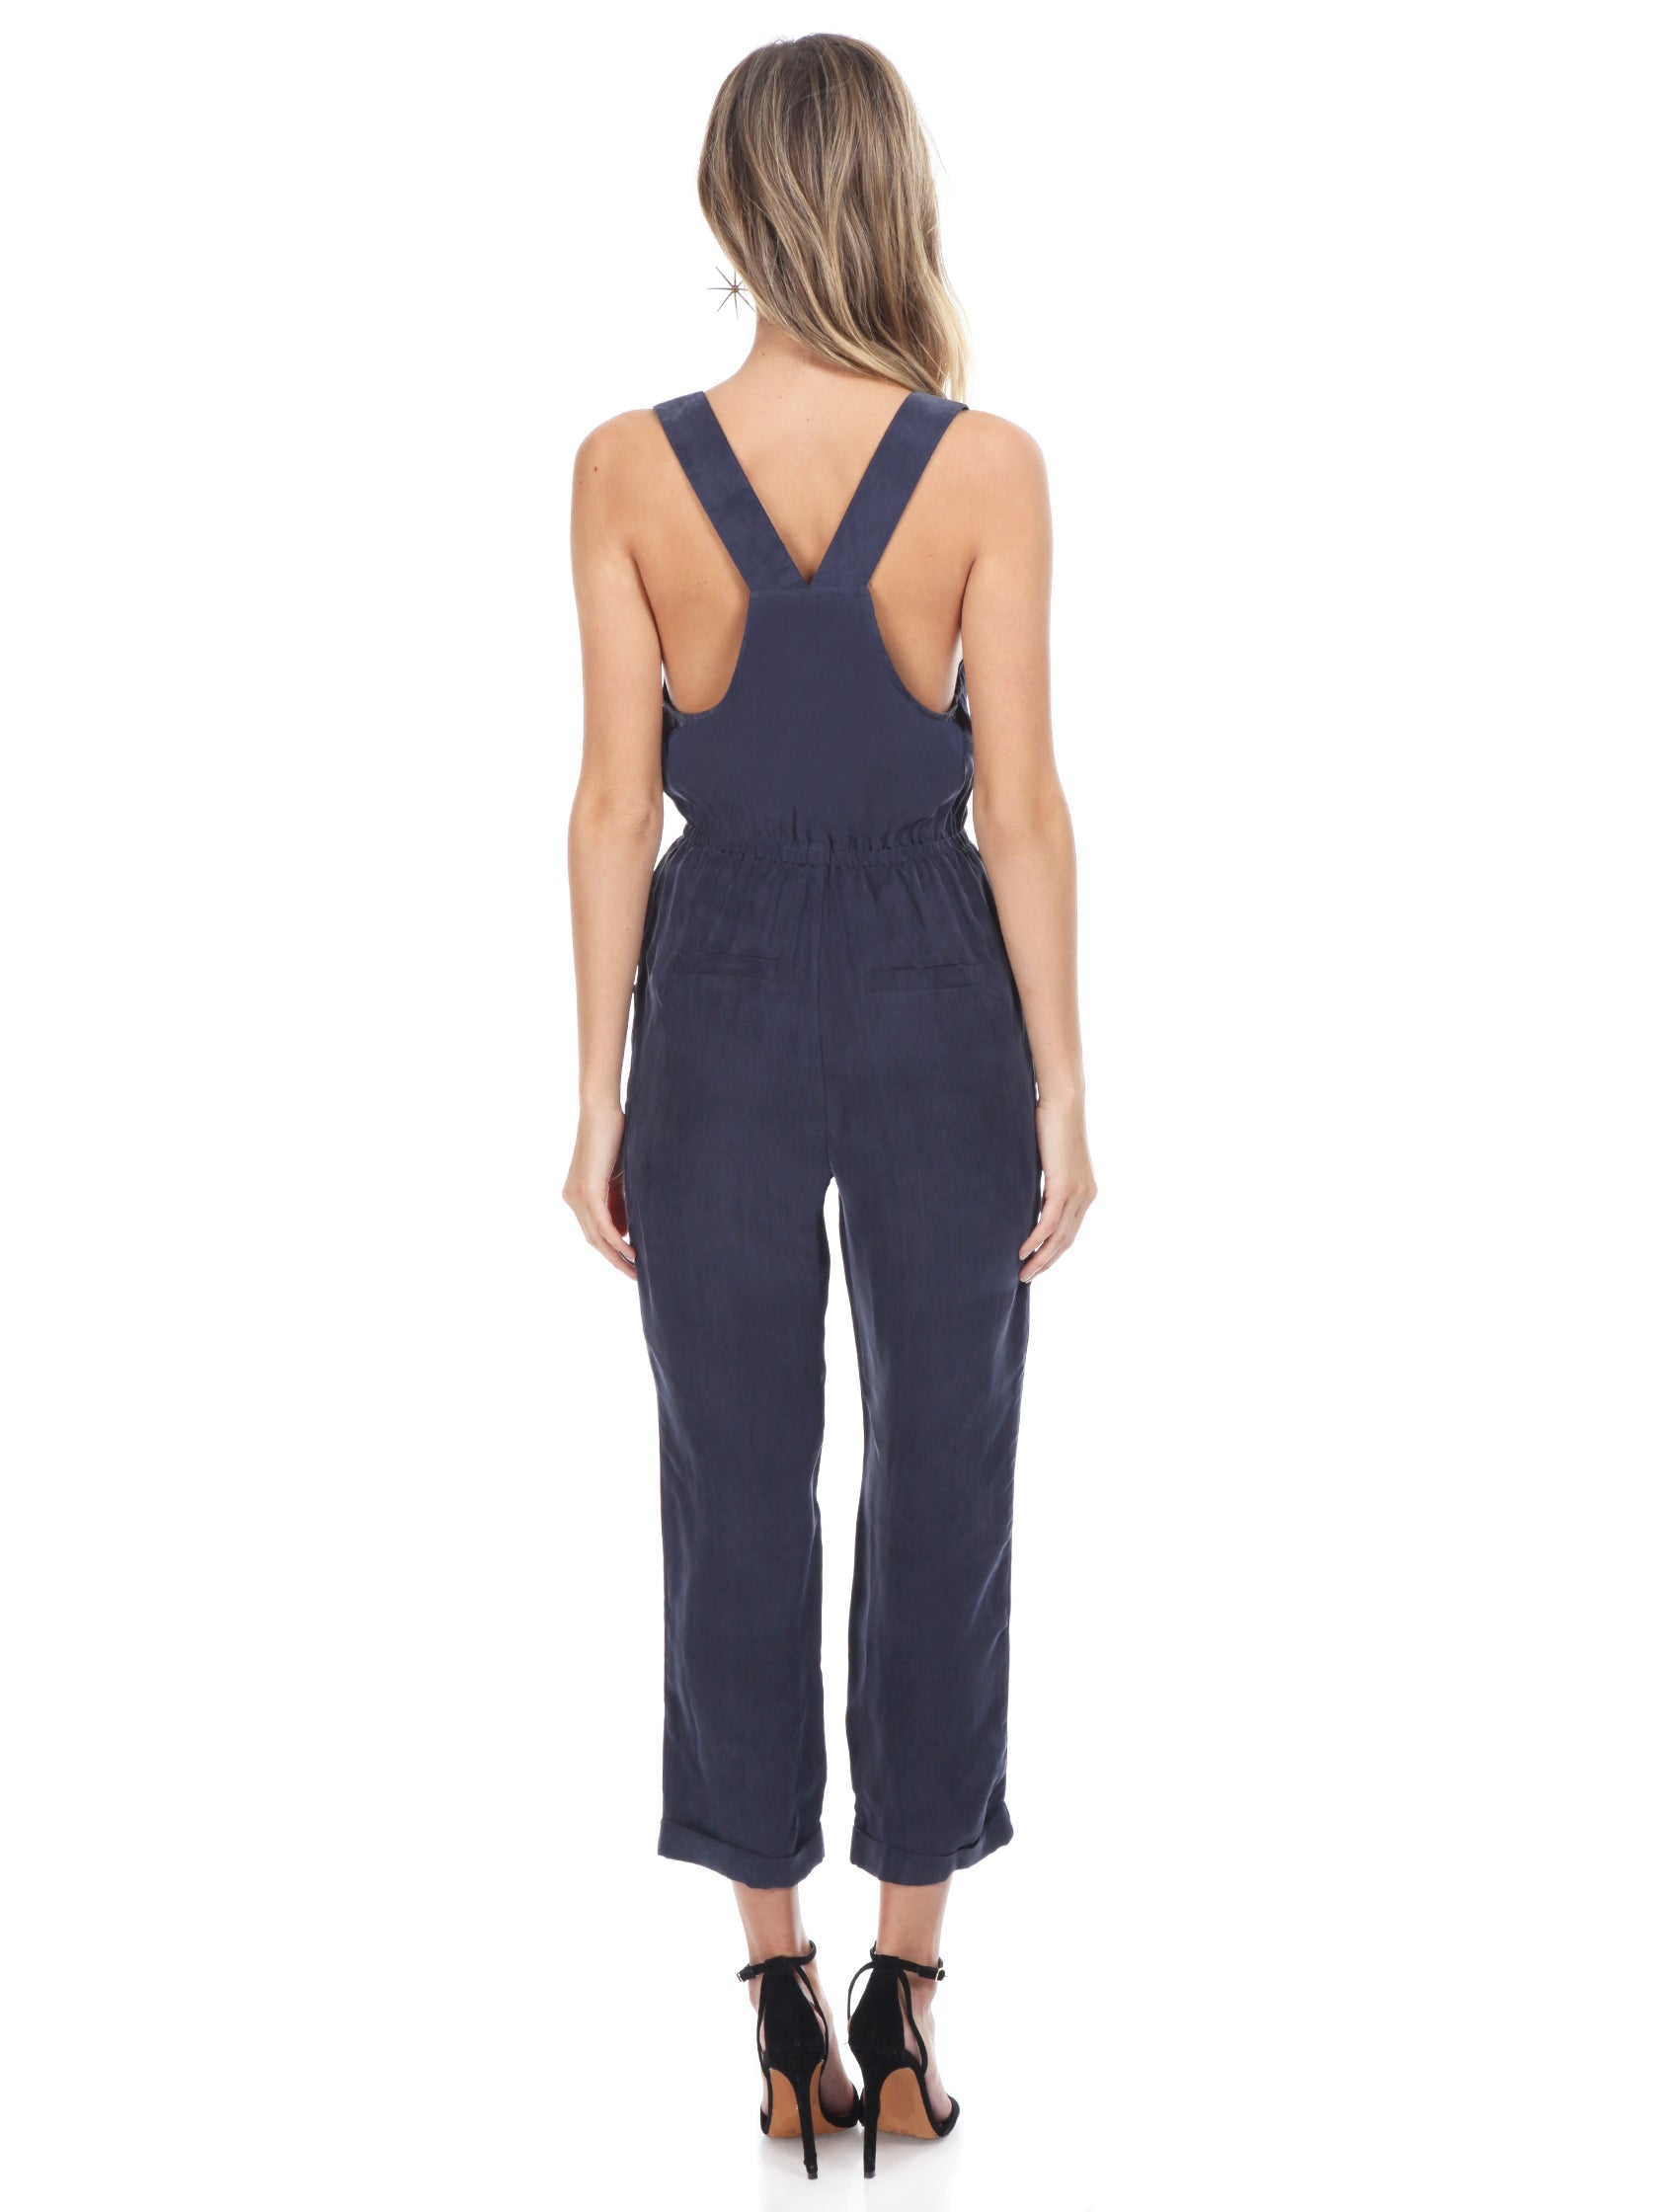 Women wearing a jumpsuit rental from FashionPass called Cadie Overall